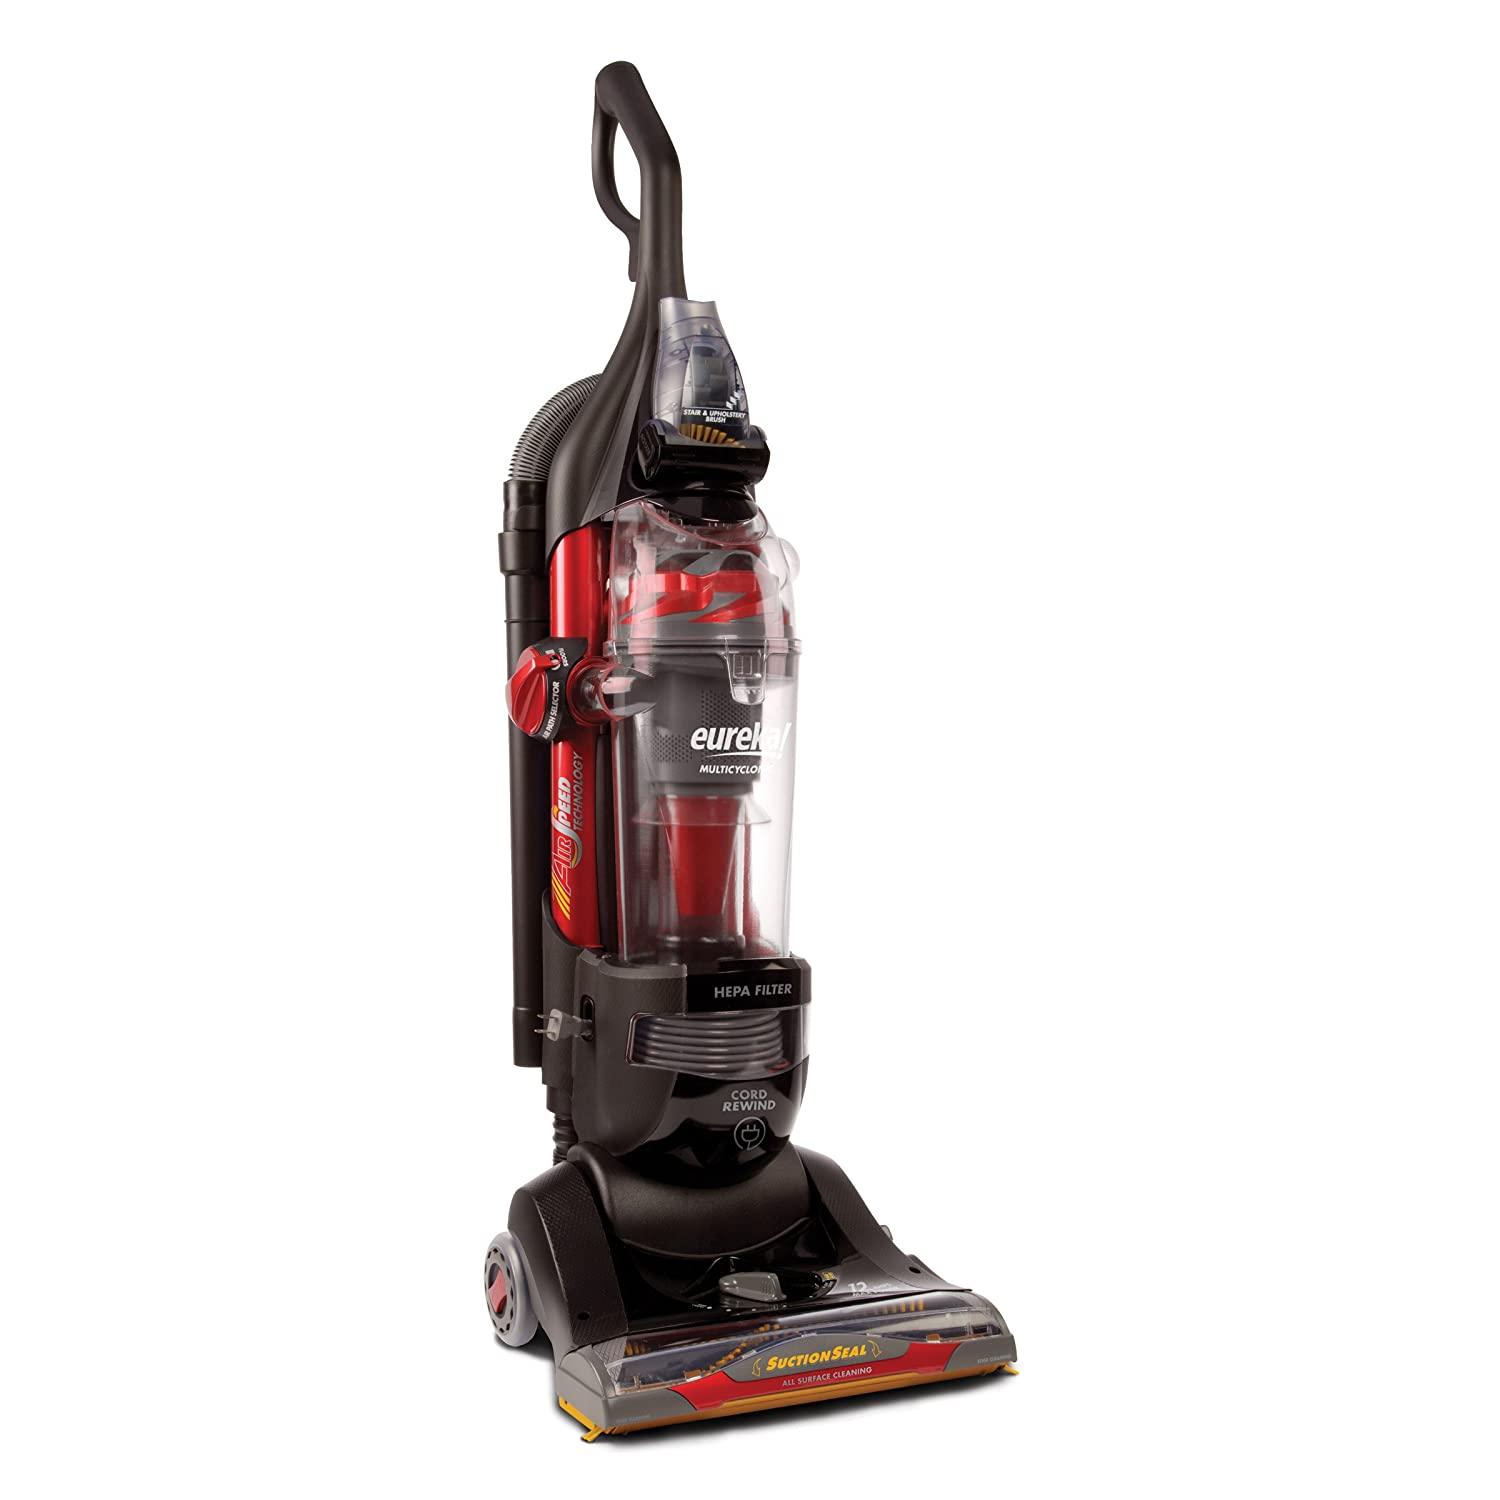 Amazon.com: Eureka SuctionSeal Pet Bagless Upright Vacuum, AS1104A: Home &  Kitchen